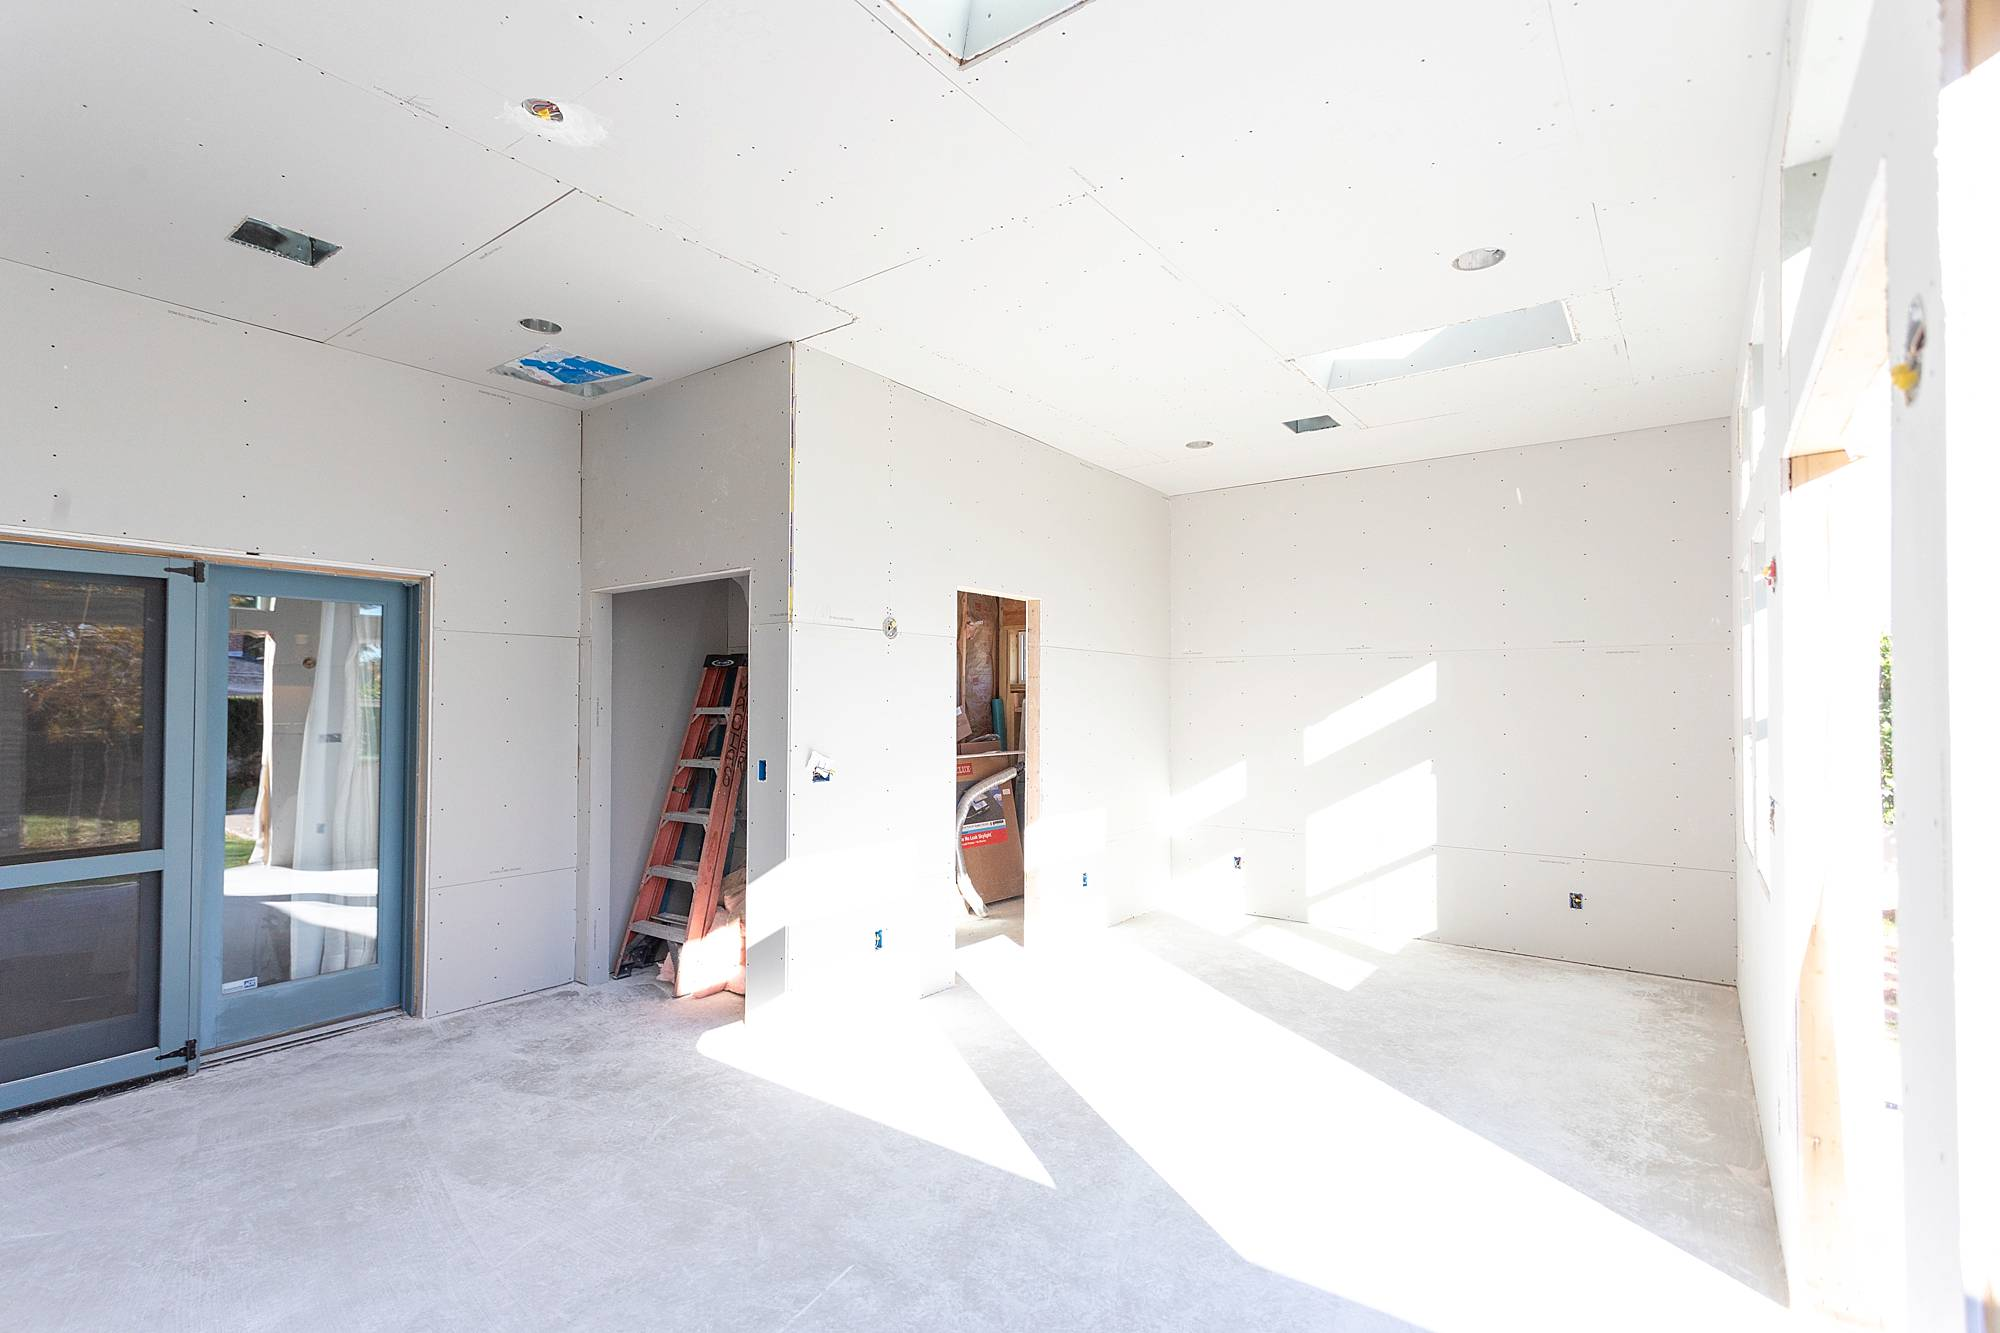 drywall up for Phoenix home expansion general contractor scottsdale arizona